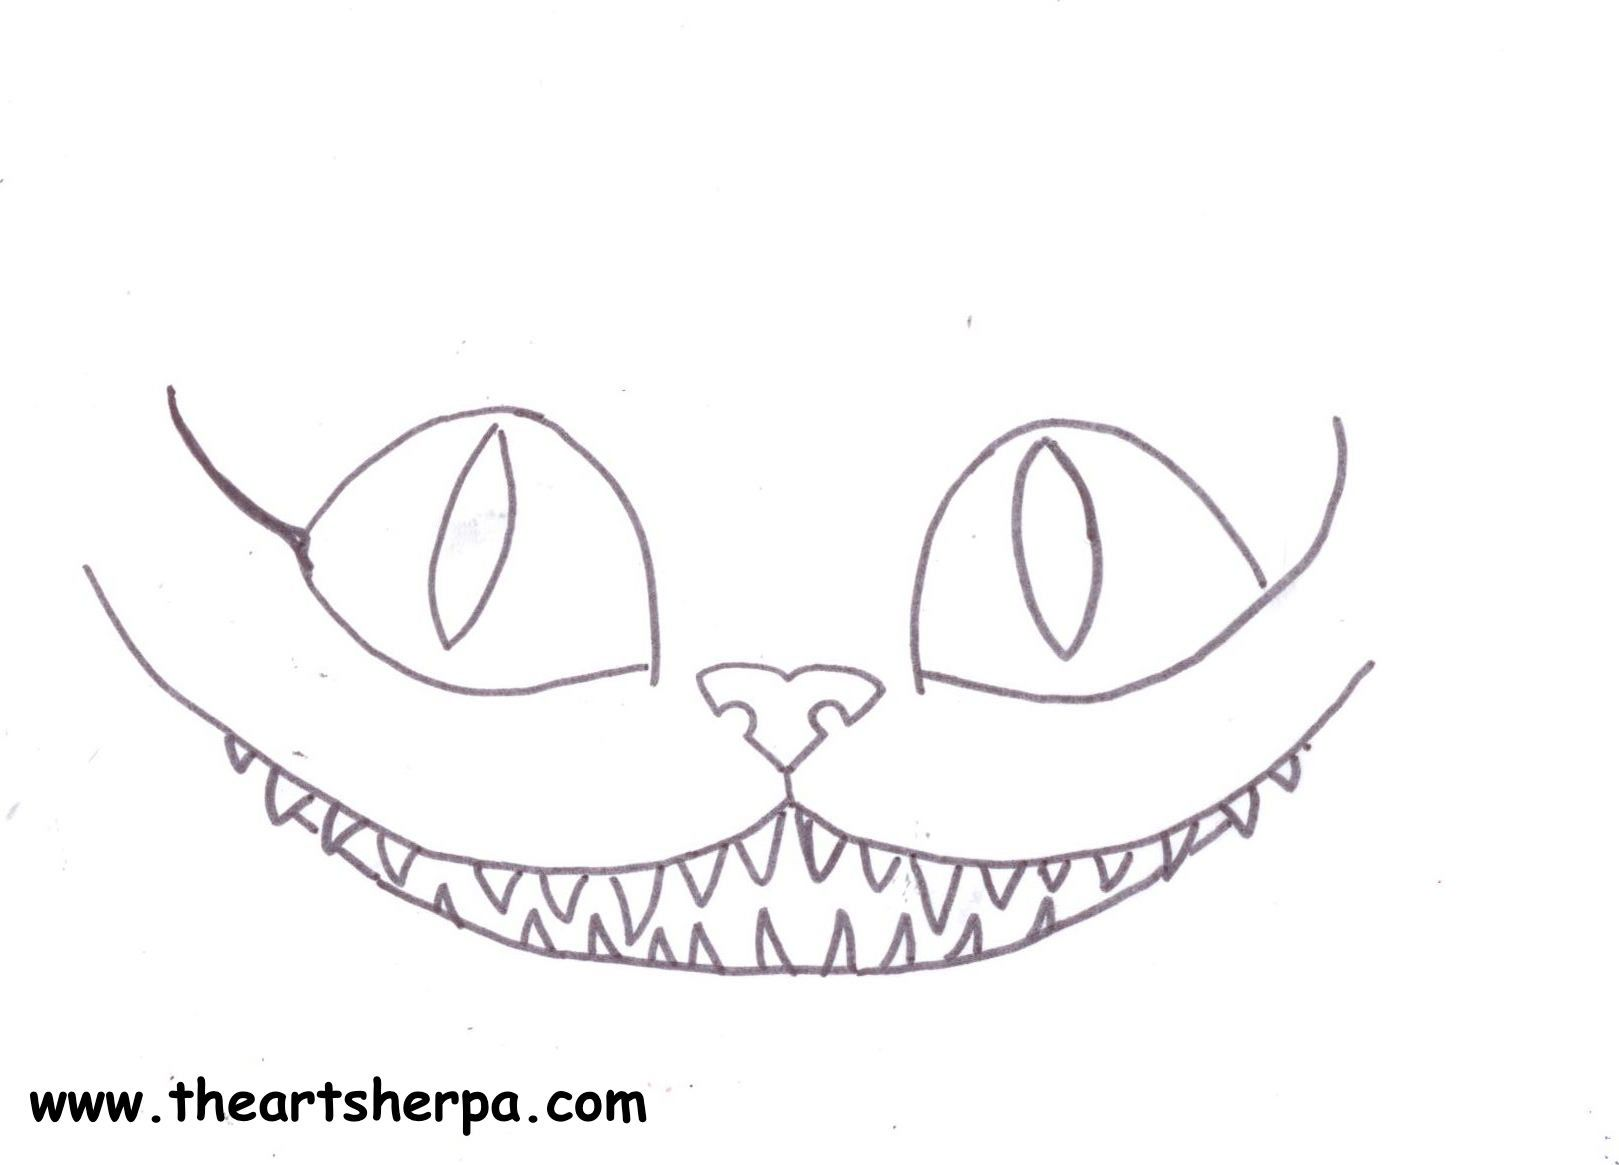 Cheshire cat face traceable for Youtube tutorial With The